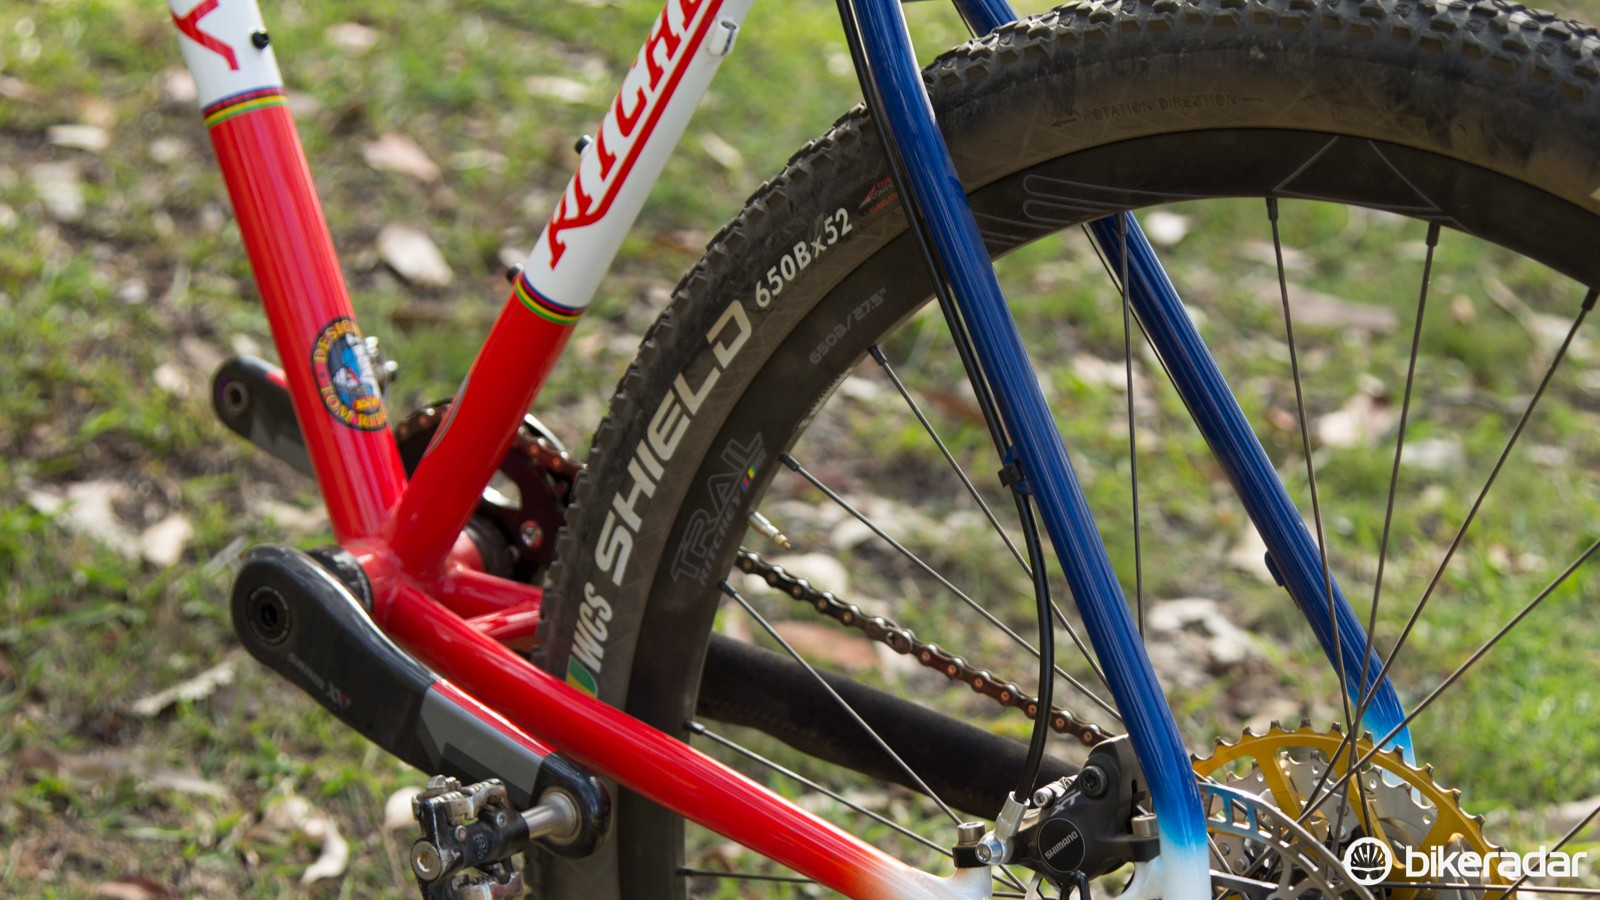 The rear brake is cleanly tucked within the rear triangle. Cheaper brakes without banjo-type hose connections will likely suffer from awkward bends to reach the seatstay hose routing